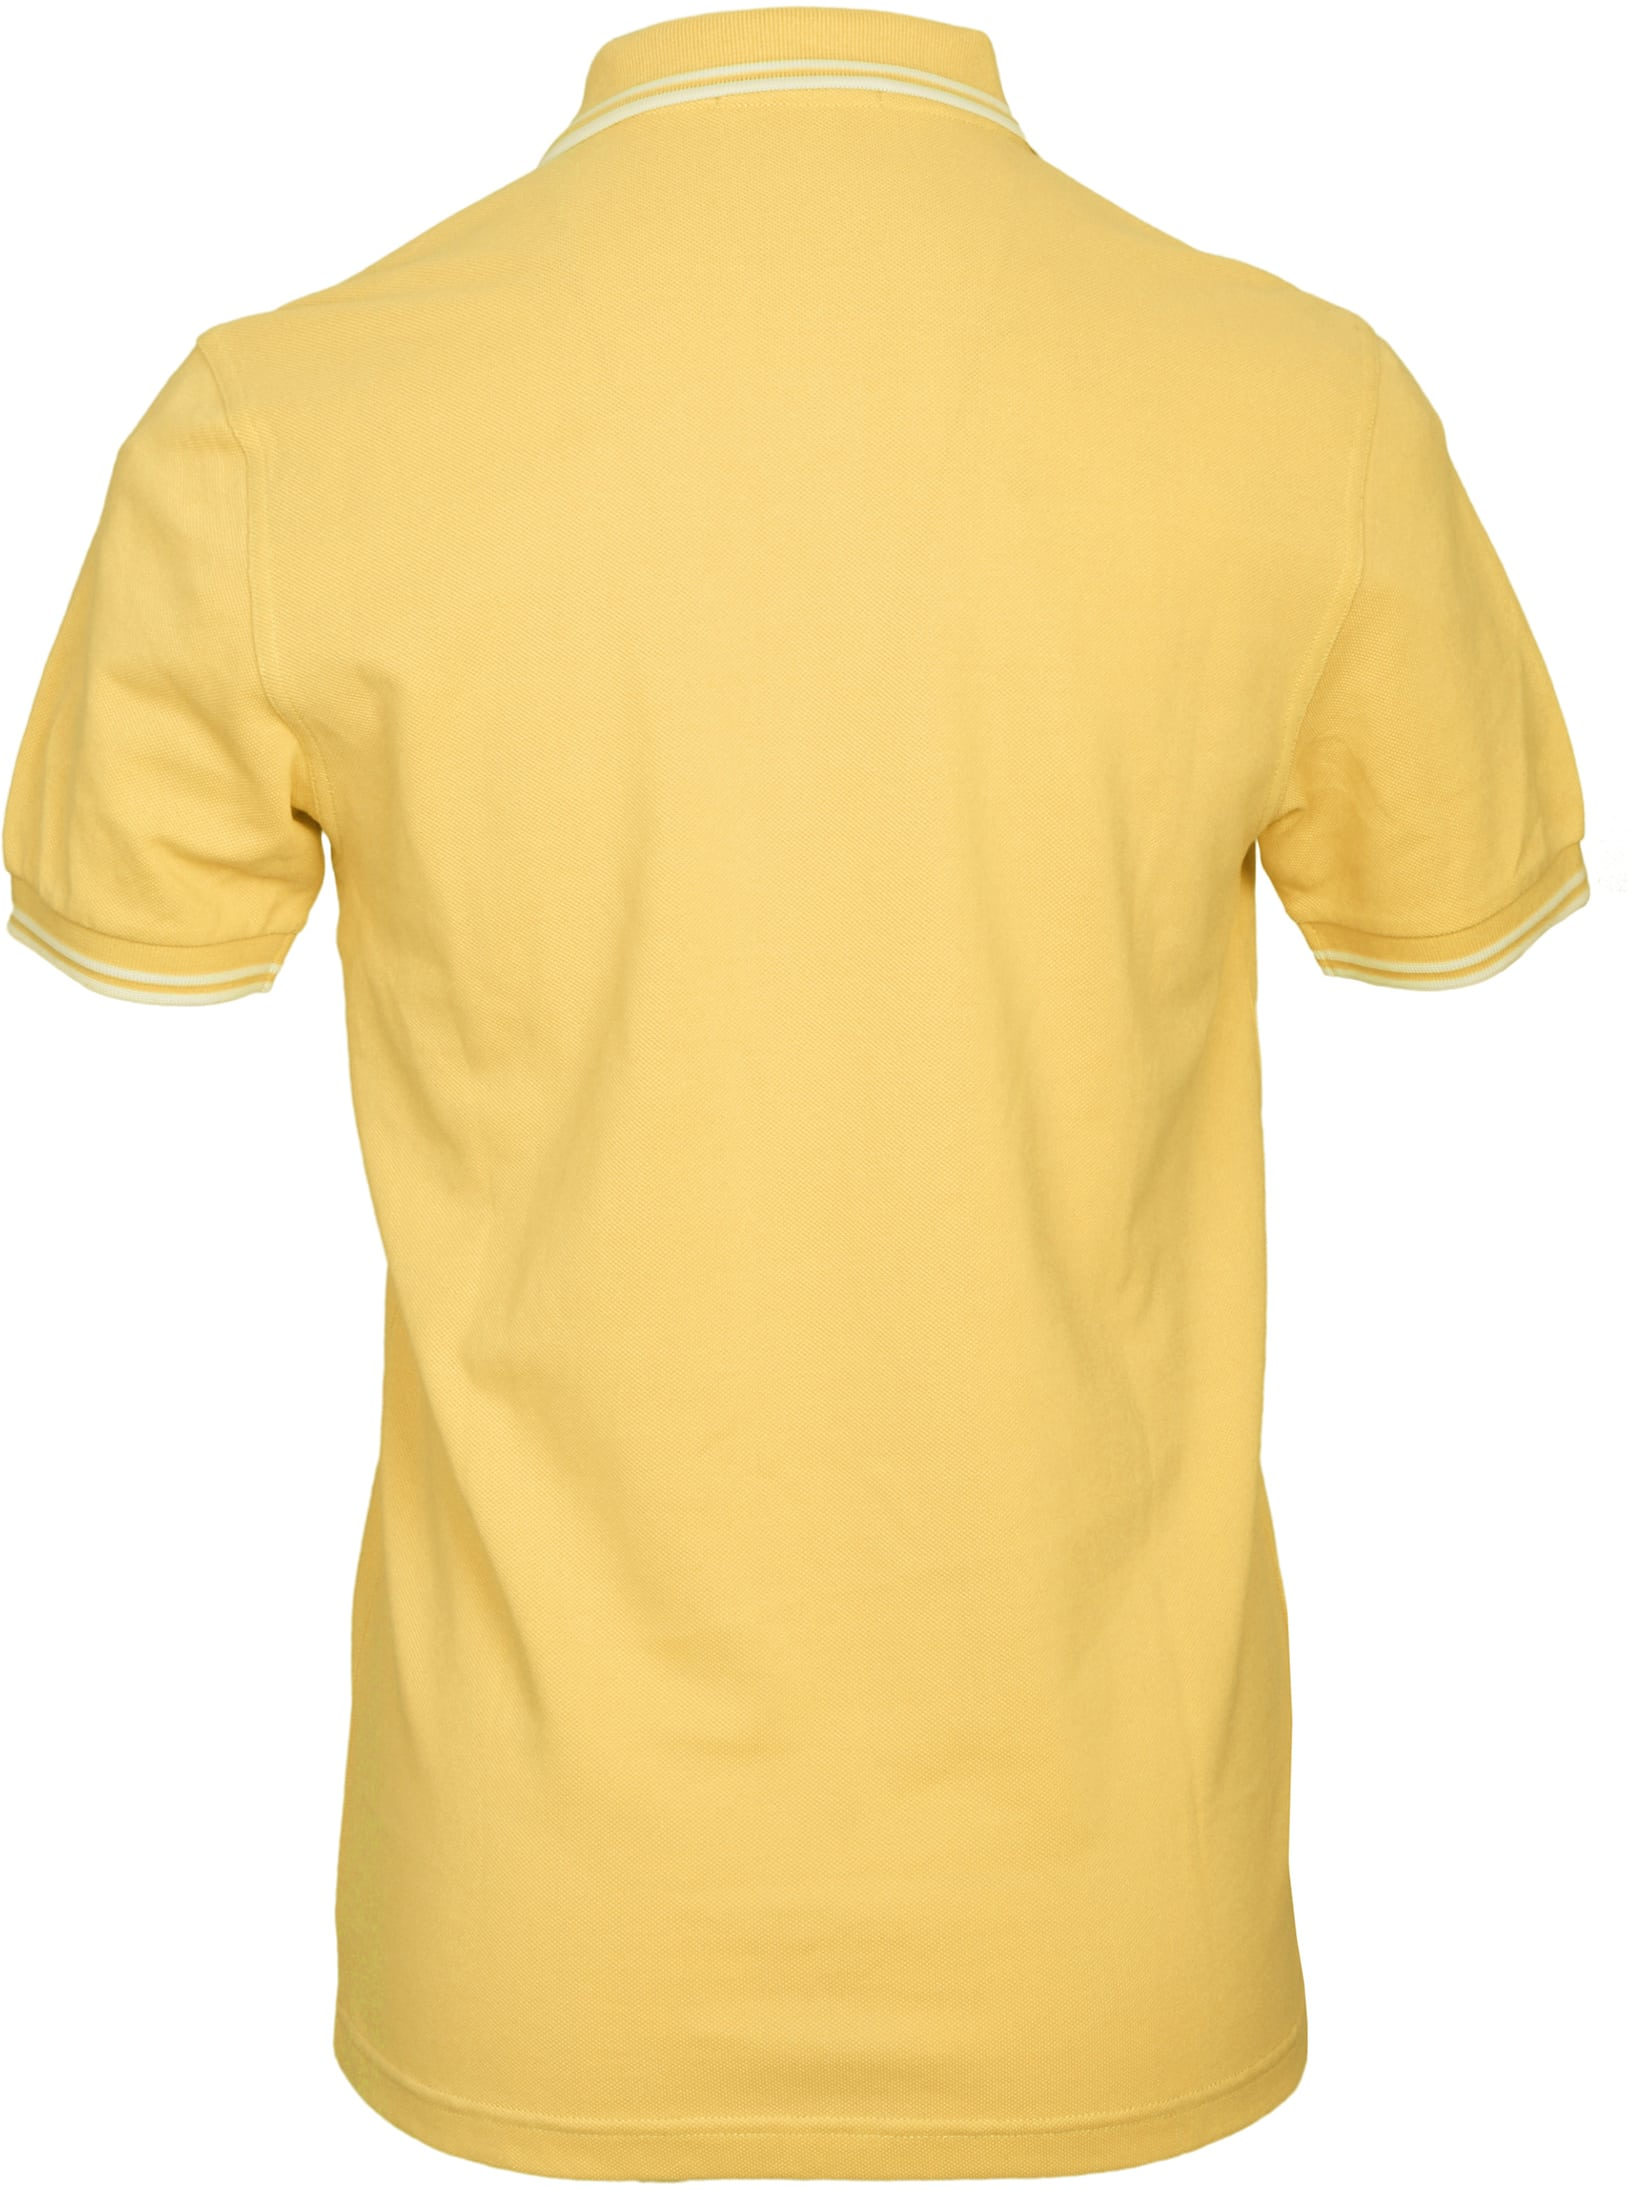 Fred Perry Polo 1964 Yellow foto 2